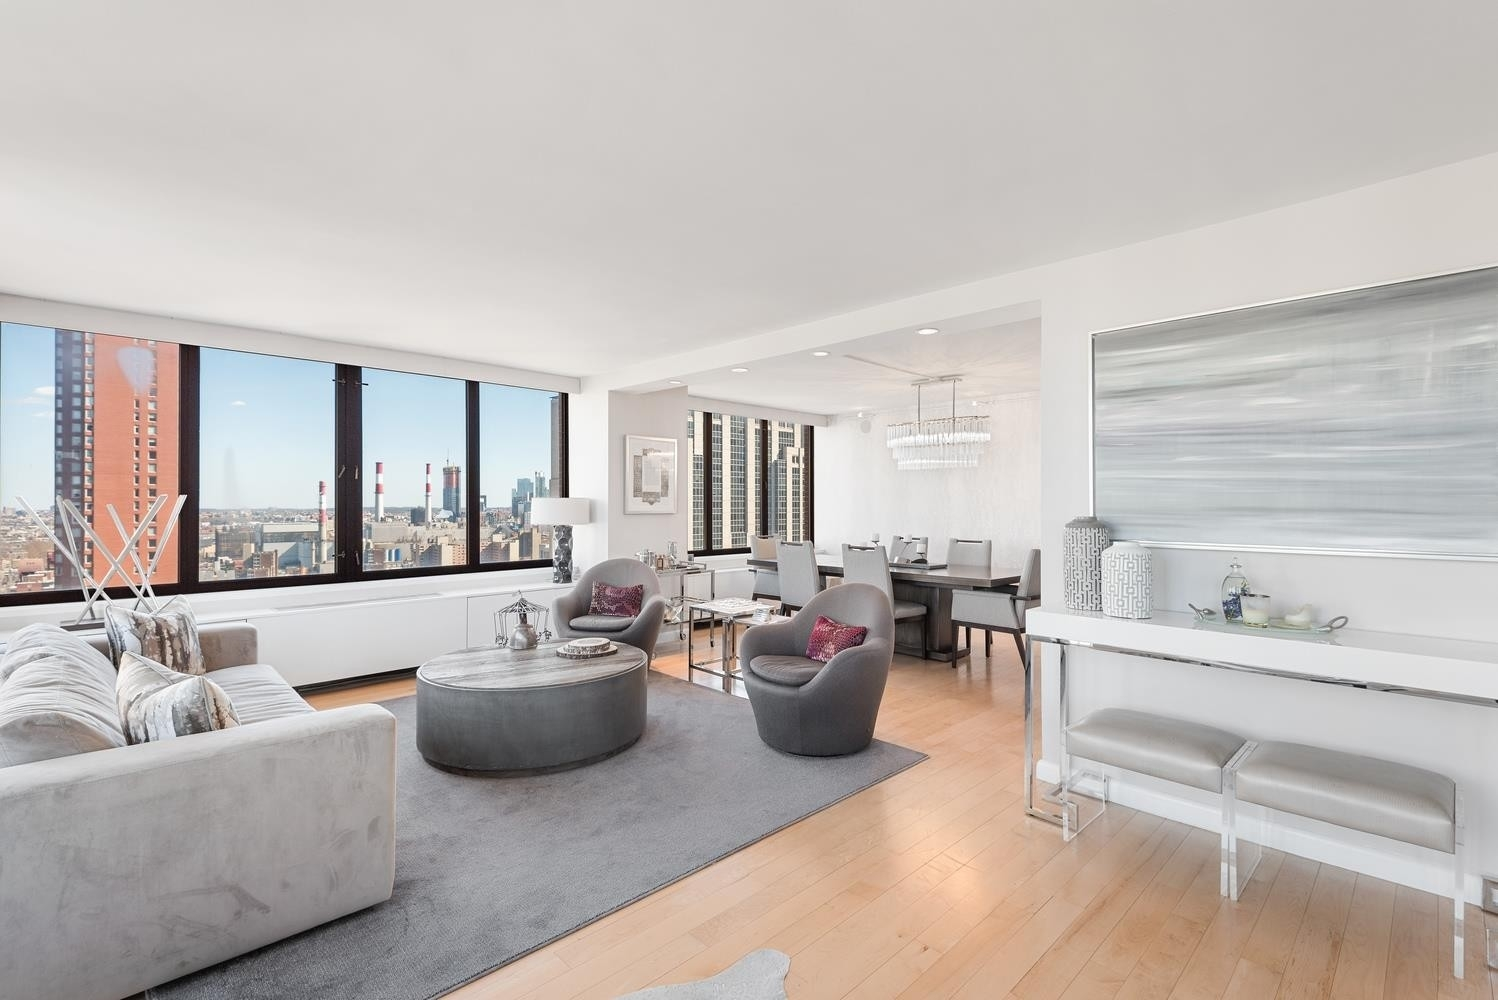 Property at The Oxford, 422 E 72ND ST , 28AB Lenox Hill, New York, NY 10021